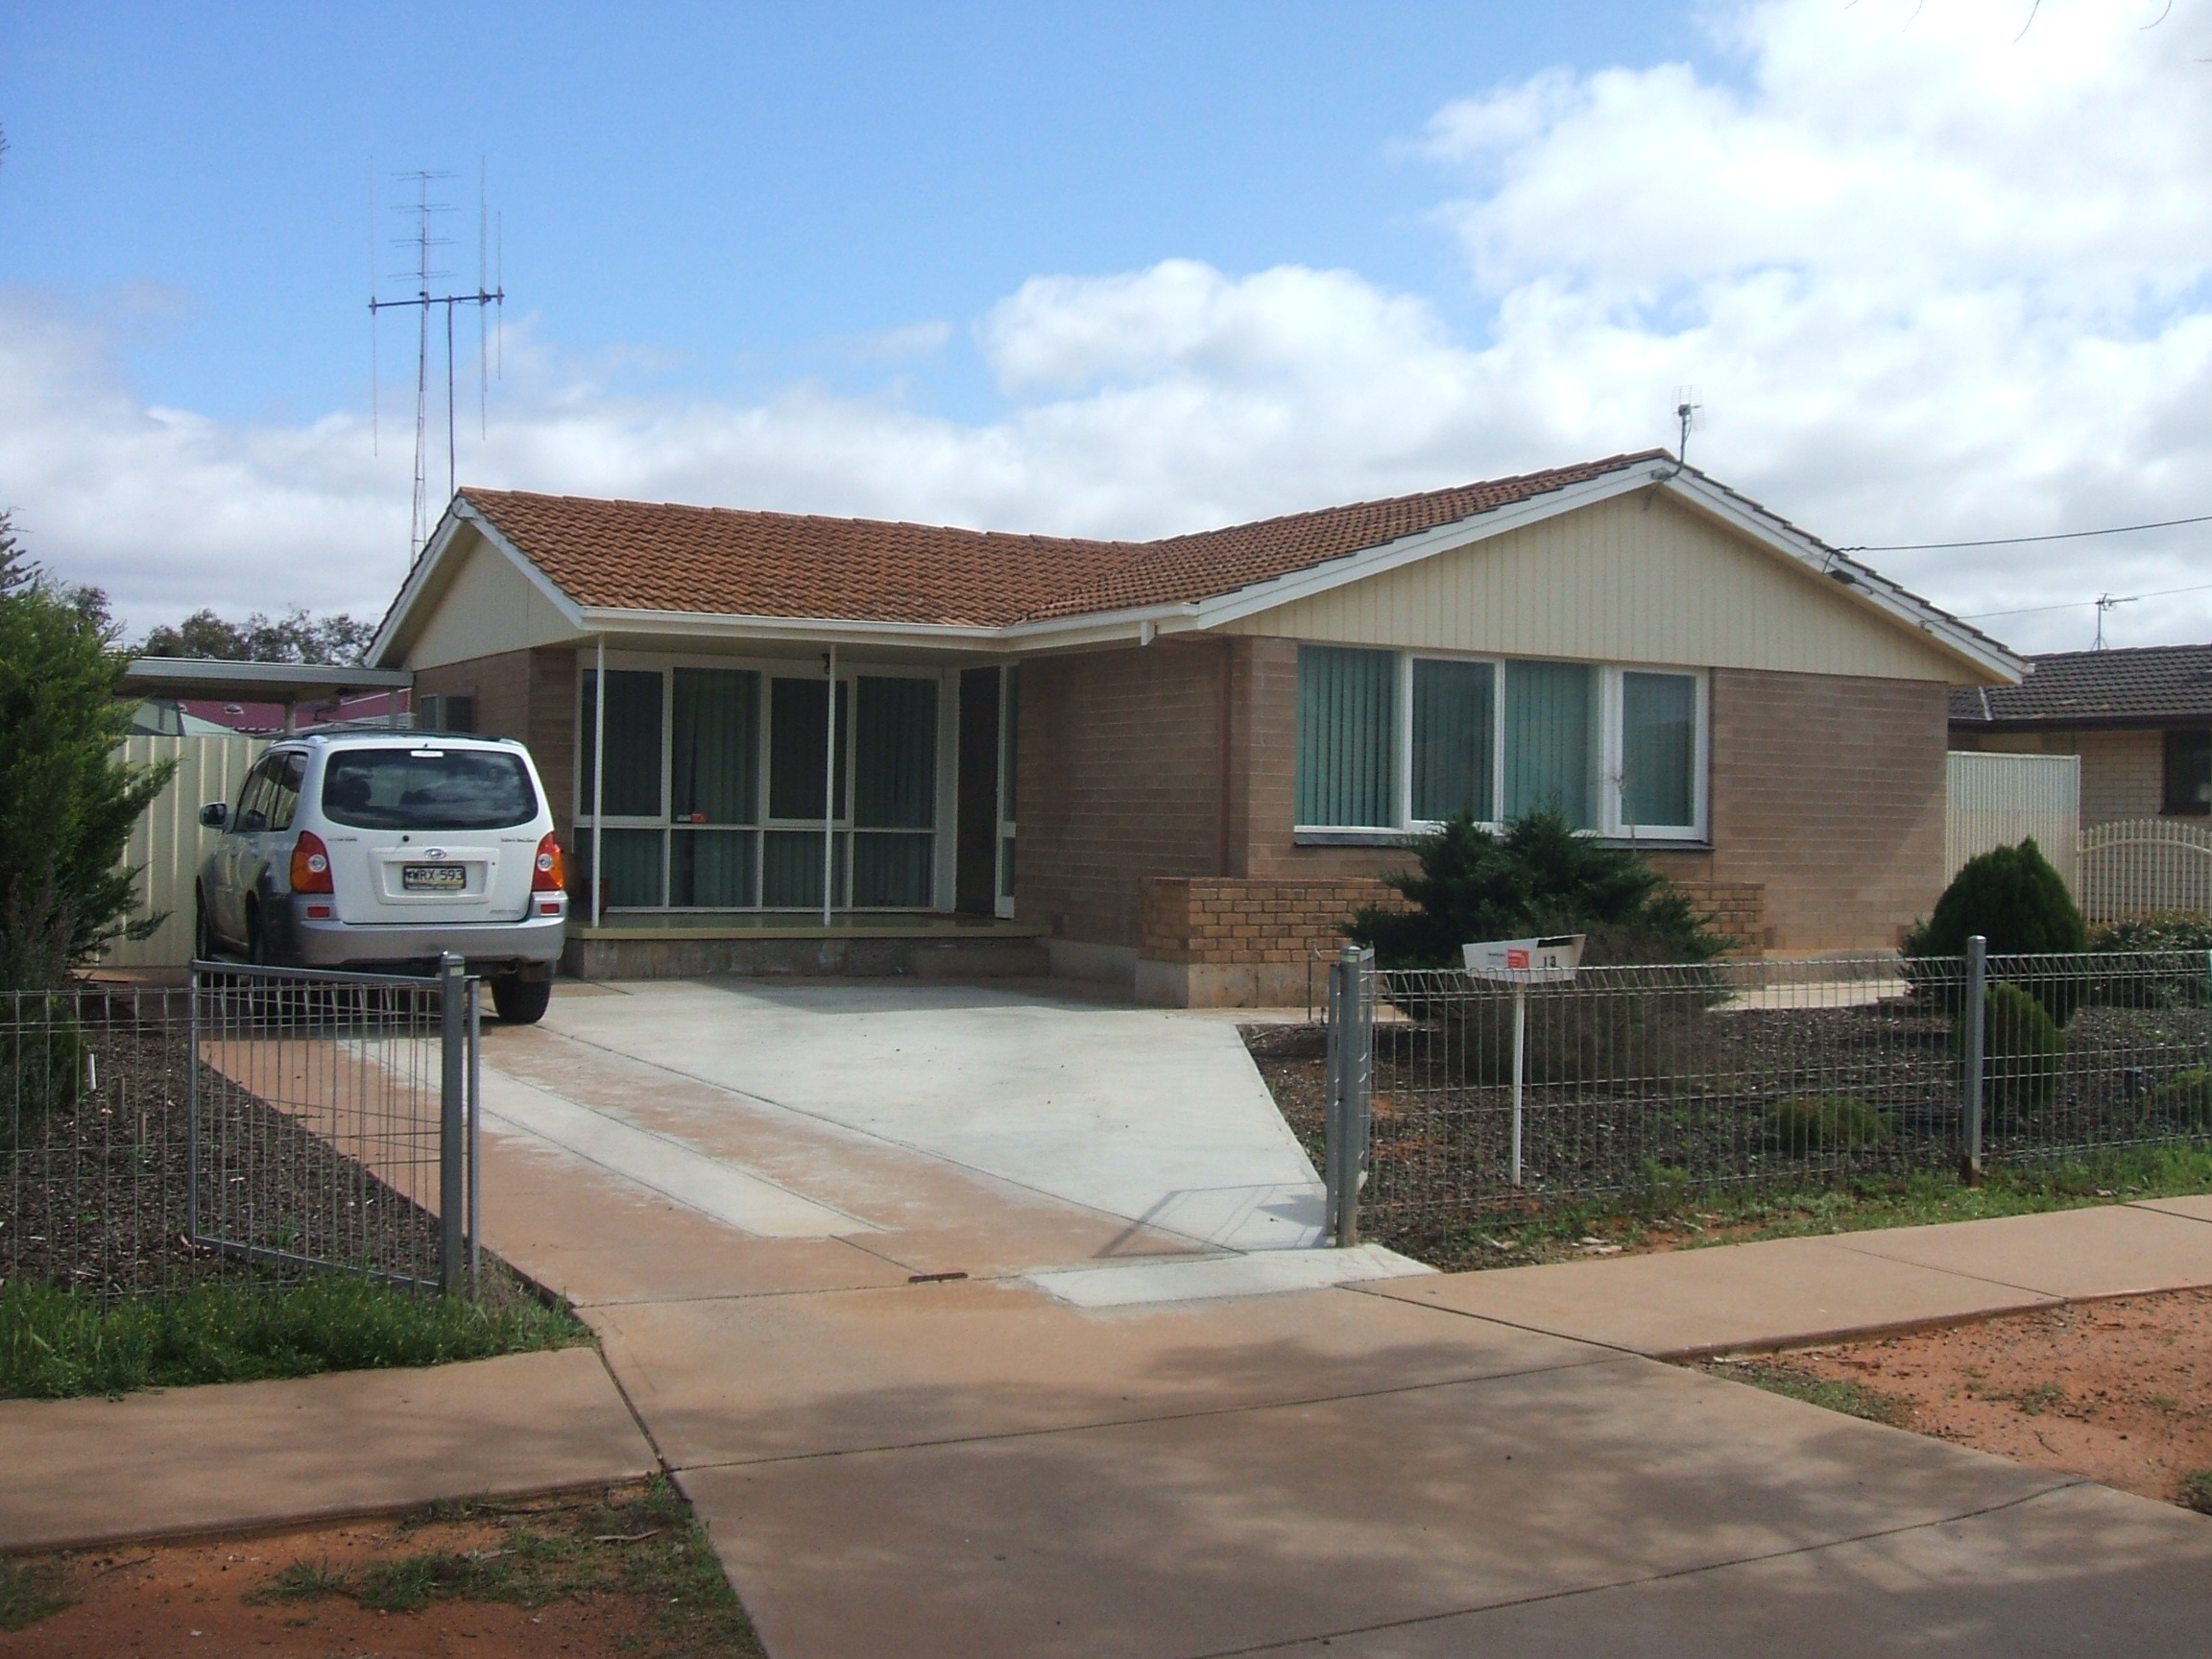 13 RAMSAY STREET WHYALLA STUART